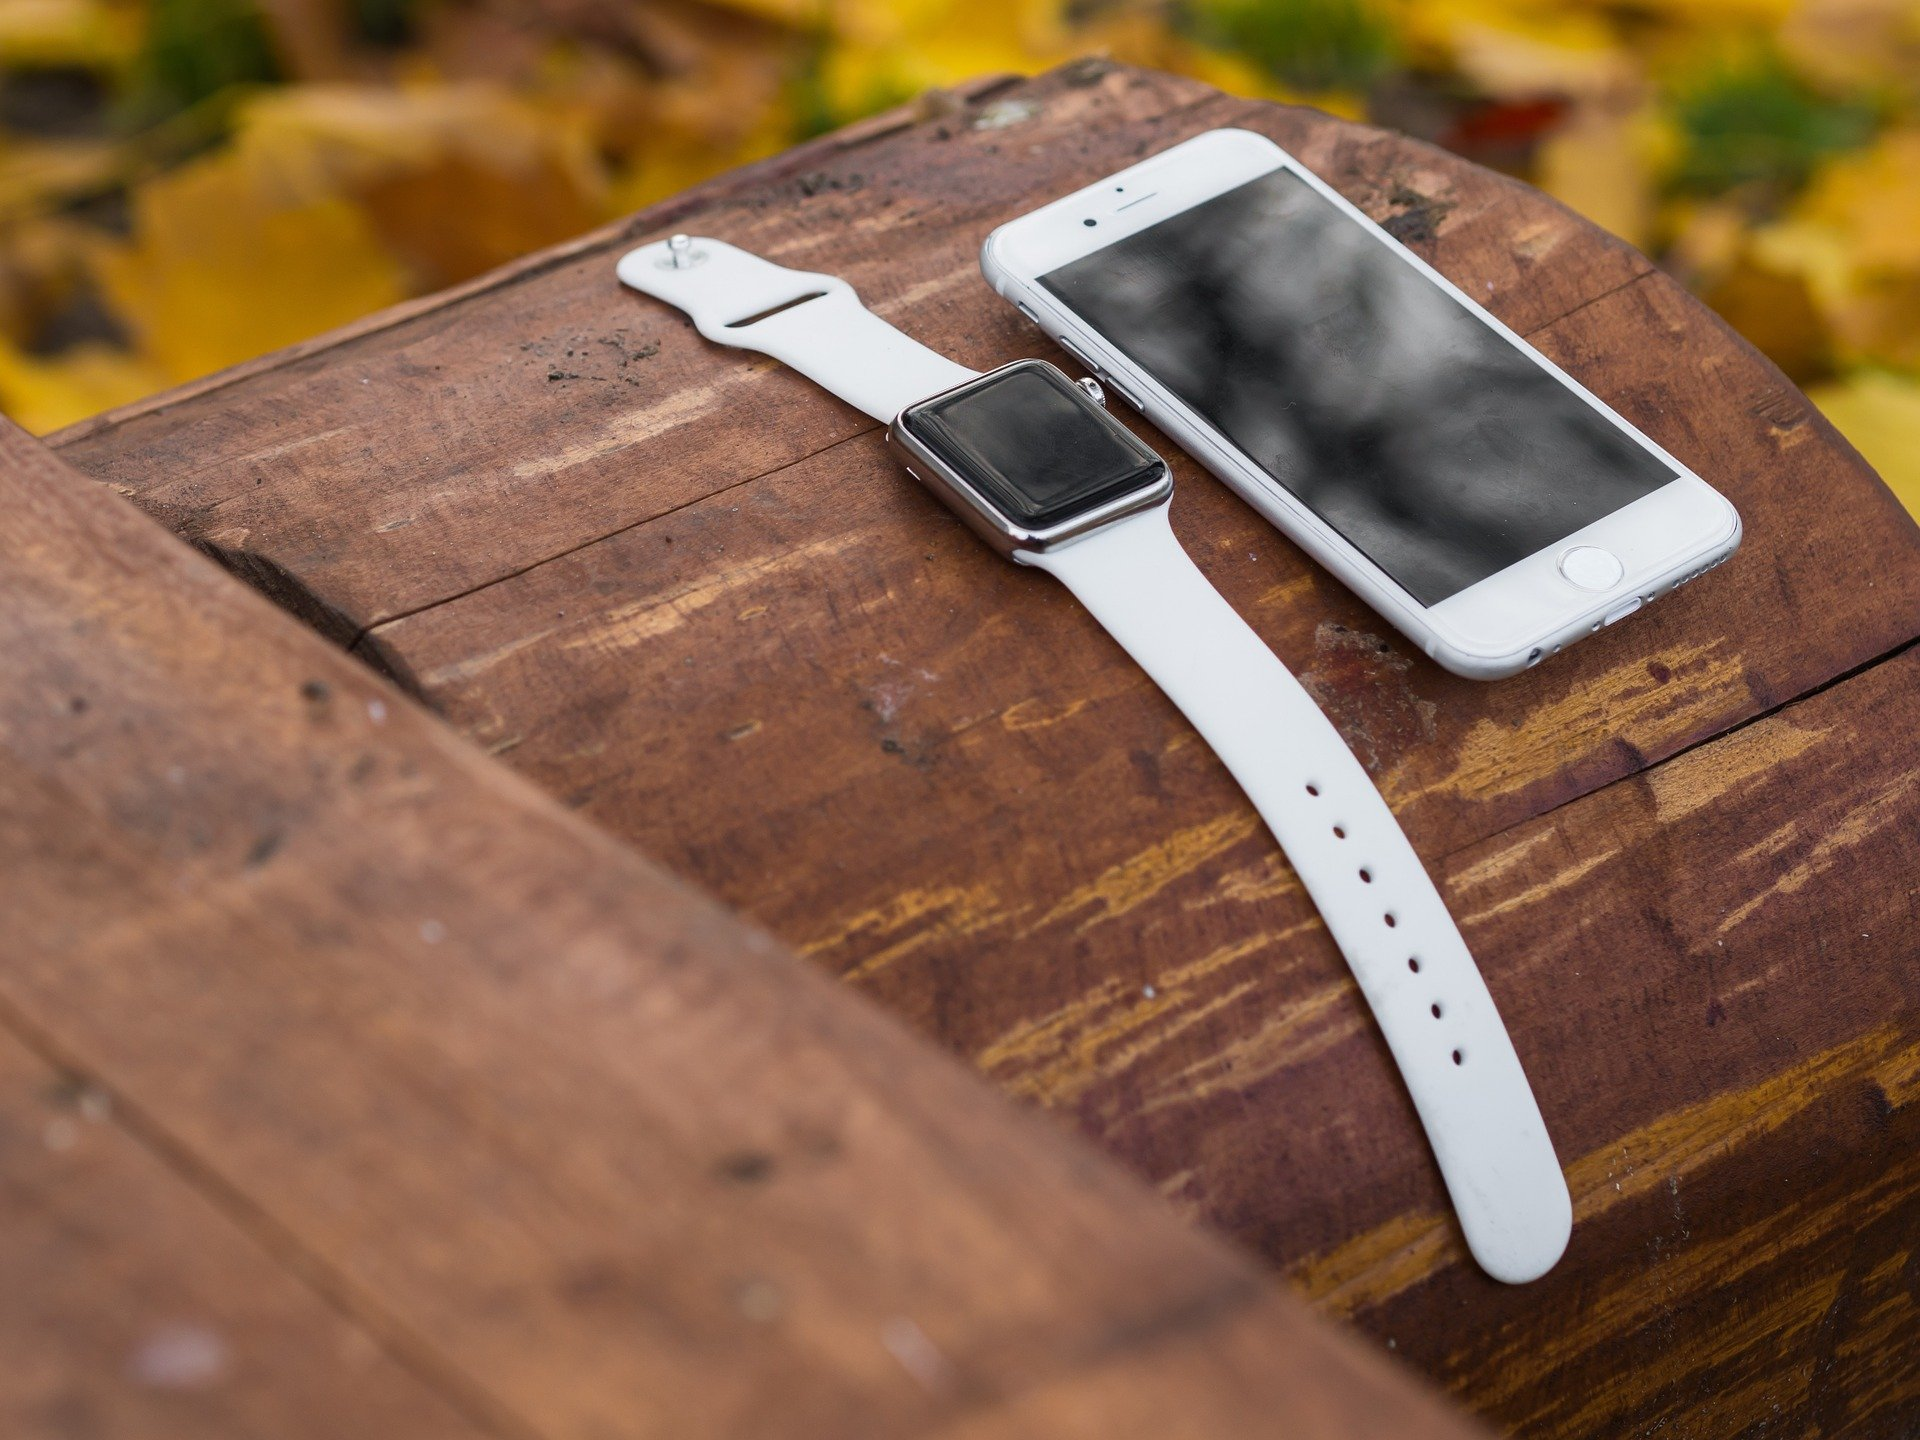 telekom iphone 6s 64gb apple watch nur 299 euro. Black Bedroom Furniture Sets. Home Design Ideas